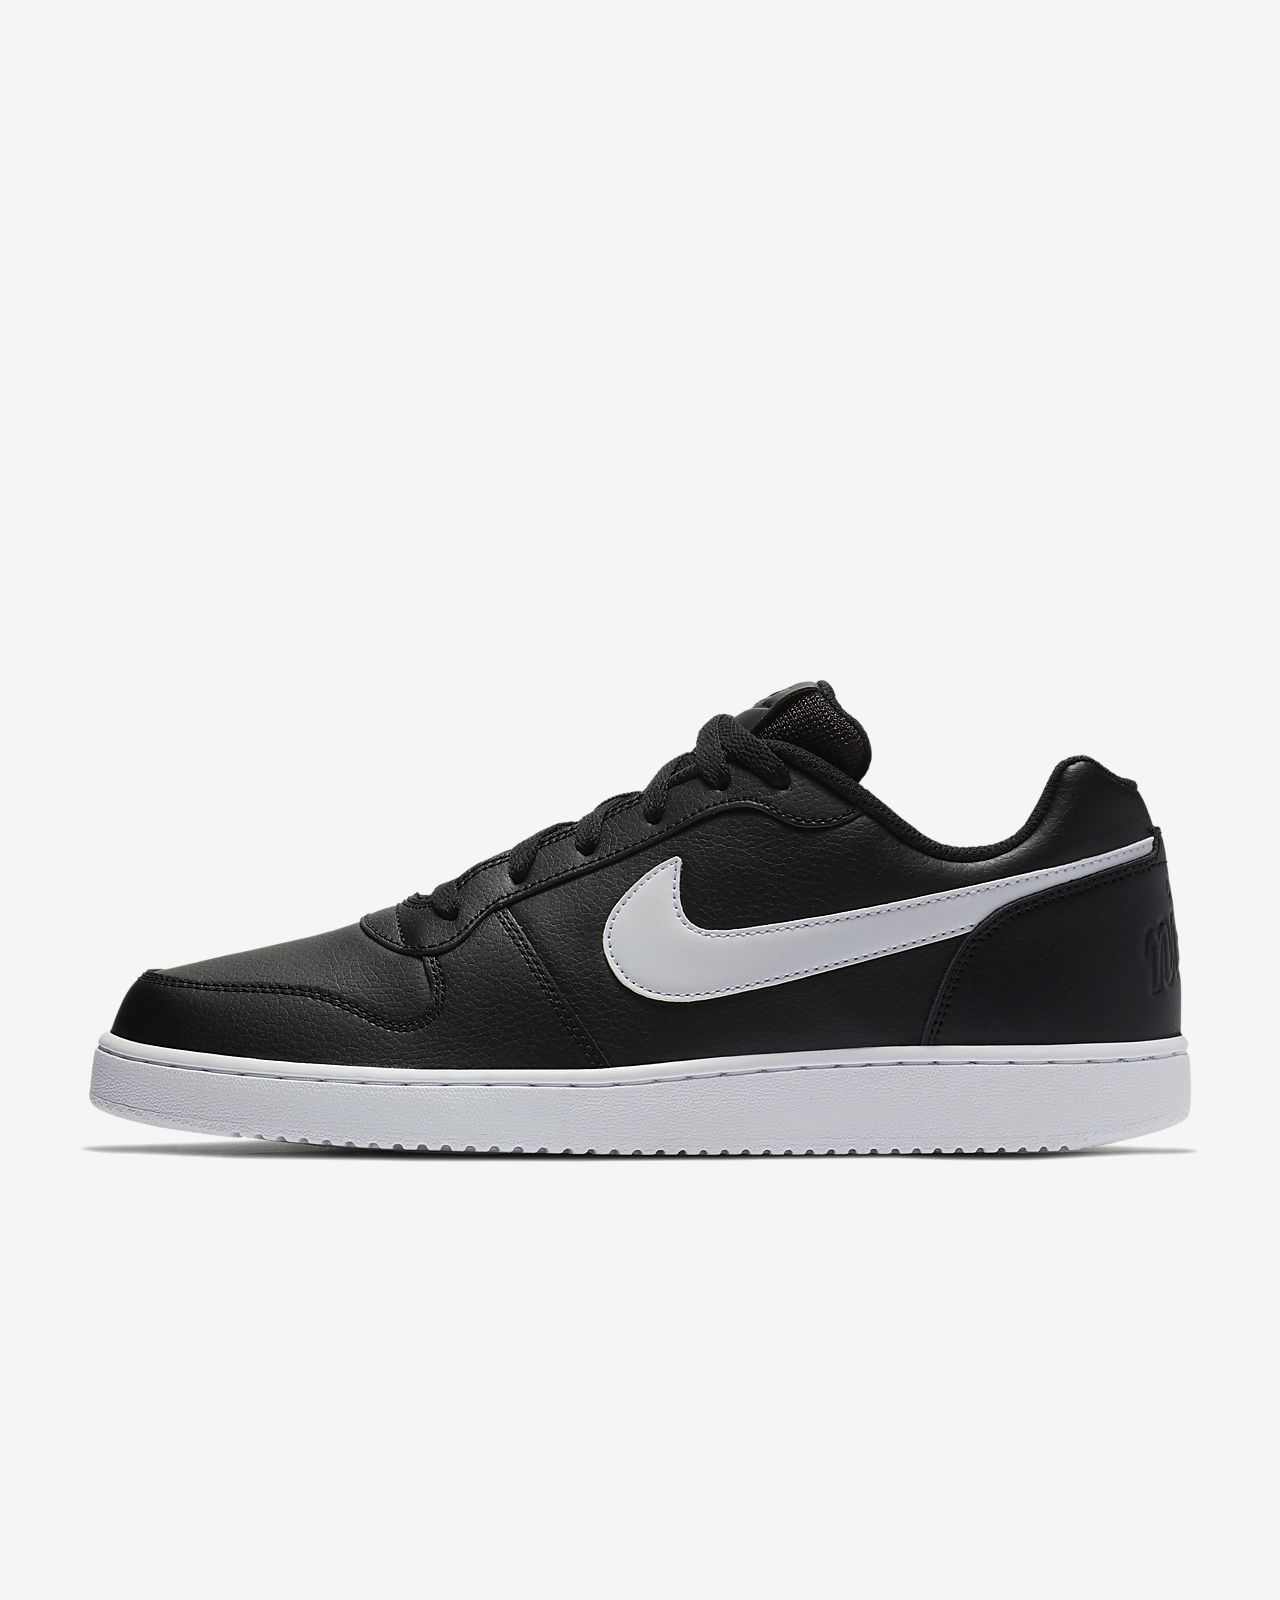 new product 63e11 4517e ... Nike Ebernon Low Mens Shoe